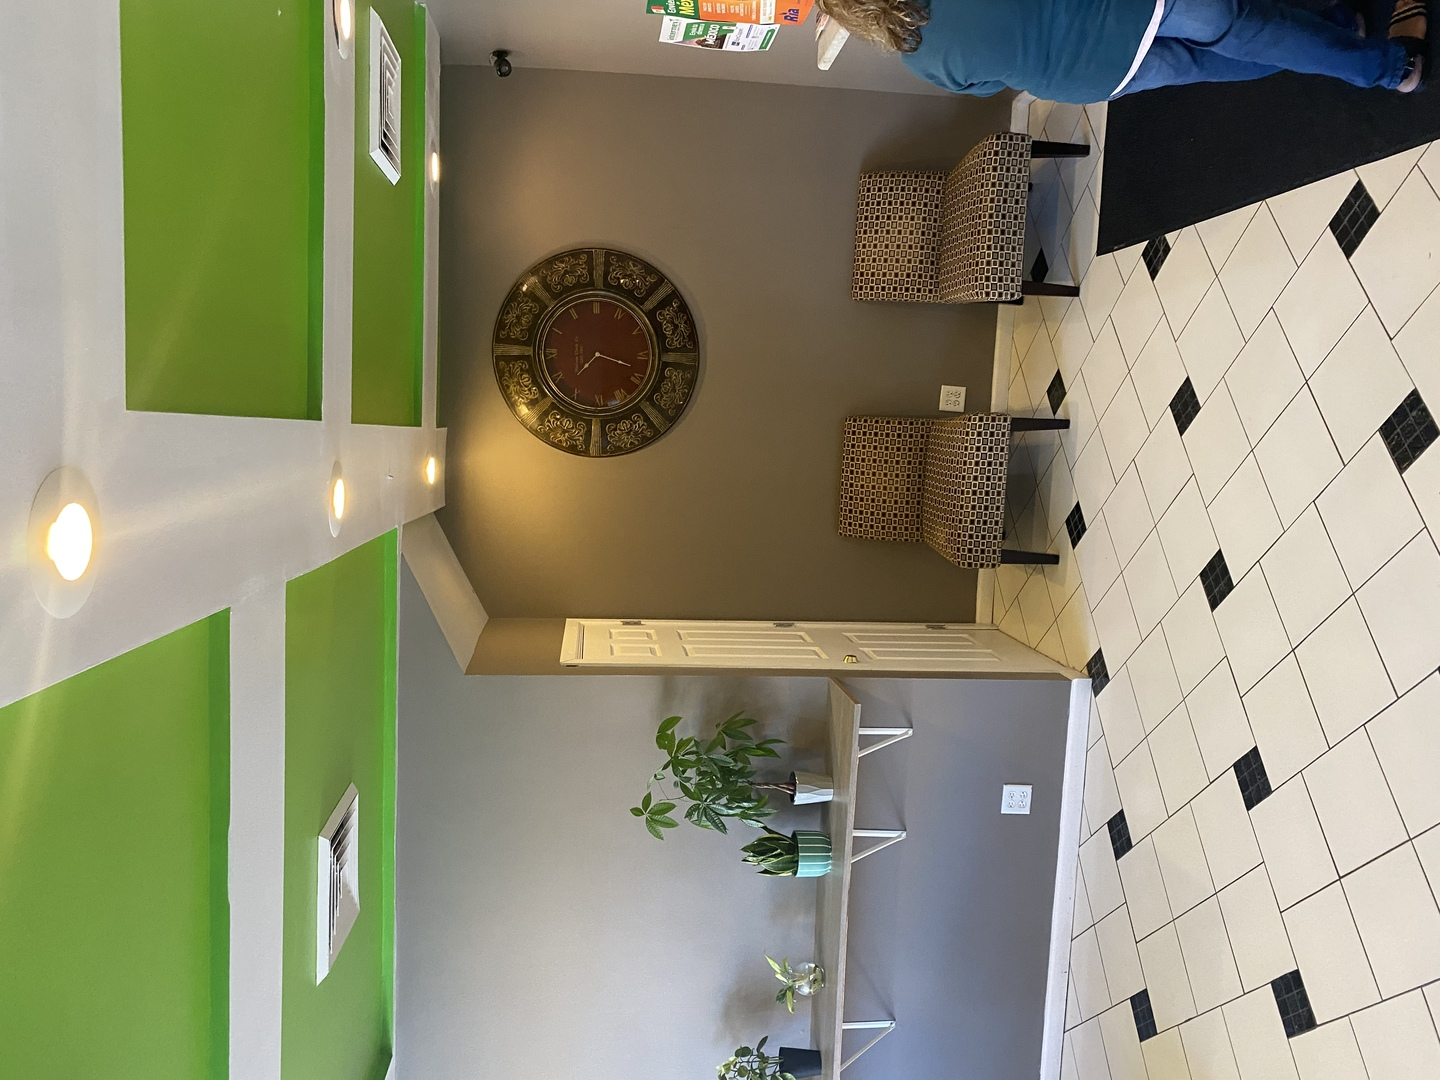 Great location with lots of businesses. Located in a highly visible/busy street in the East Side of